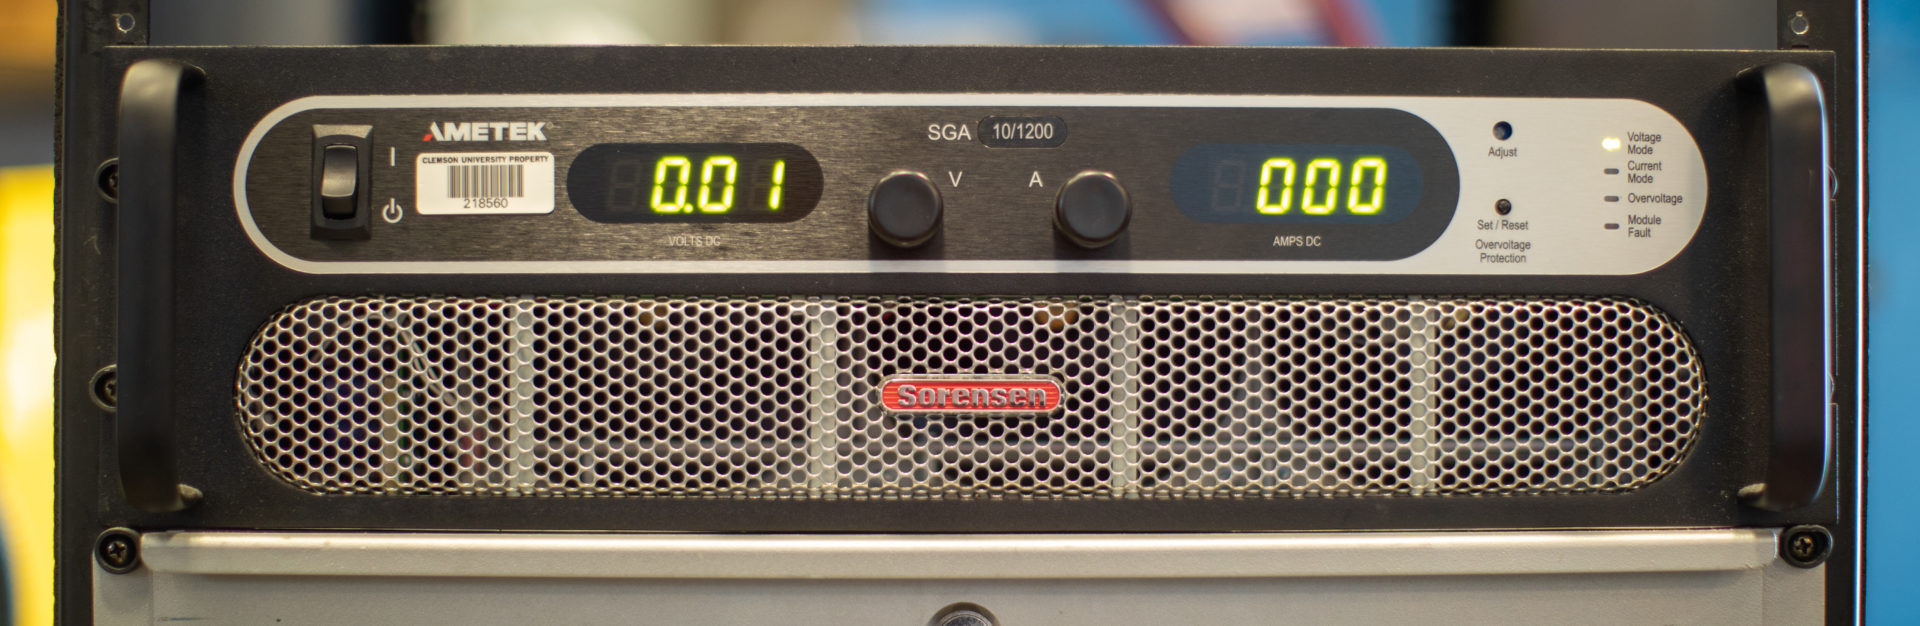 Image of front panel of power supply used in manufacturing lab